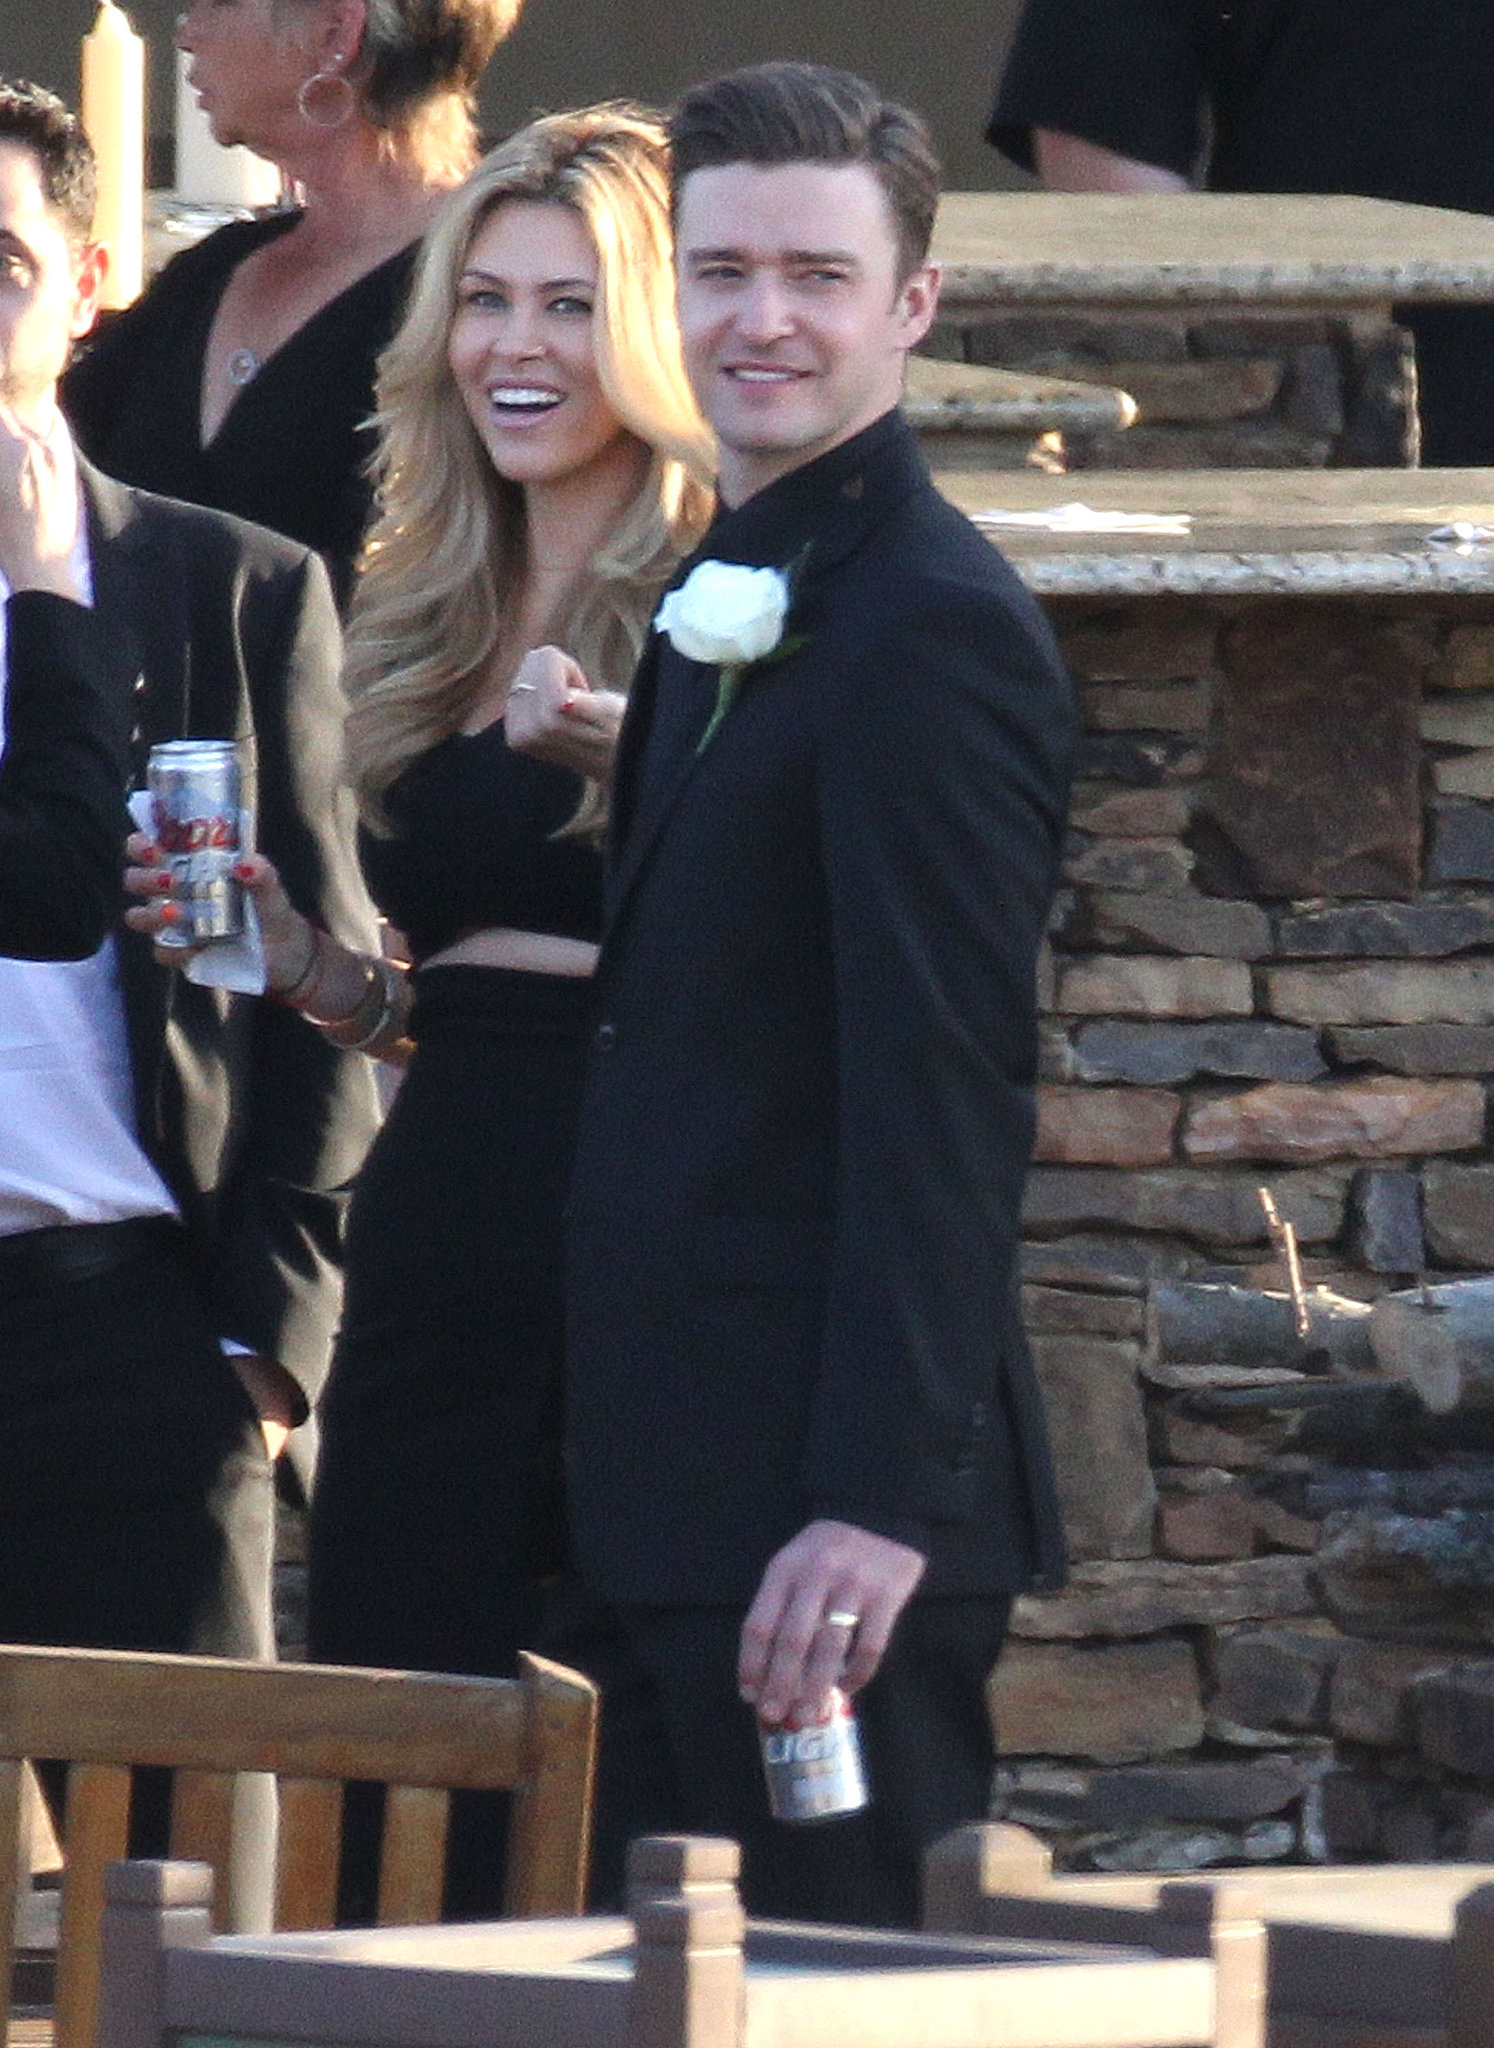 Justin Timberlake enjoyed a cold beer while at a childhood pal's wedding in Memphis in April 2013.